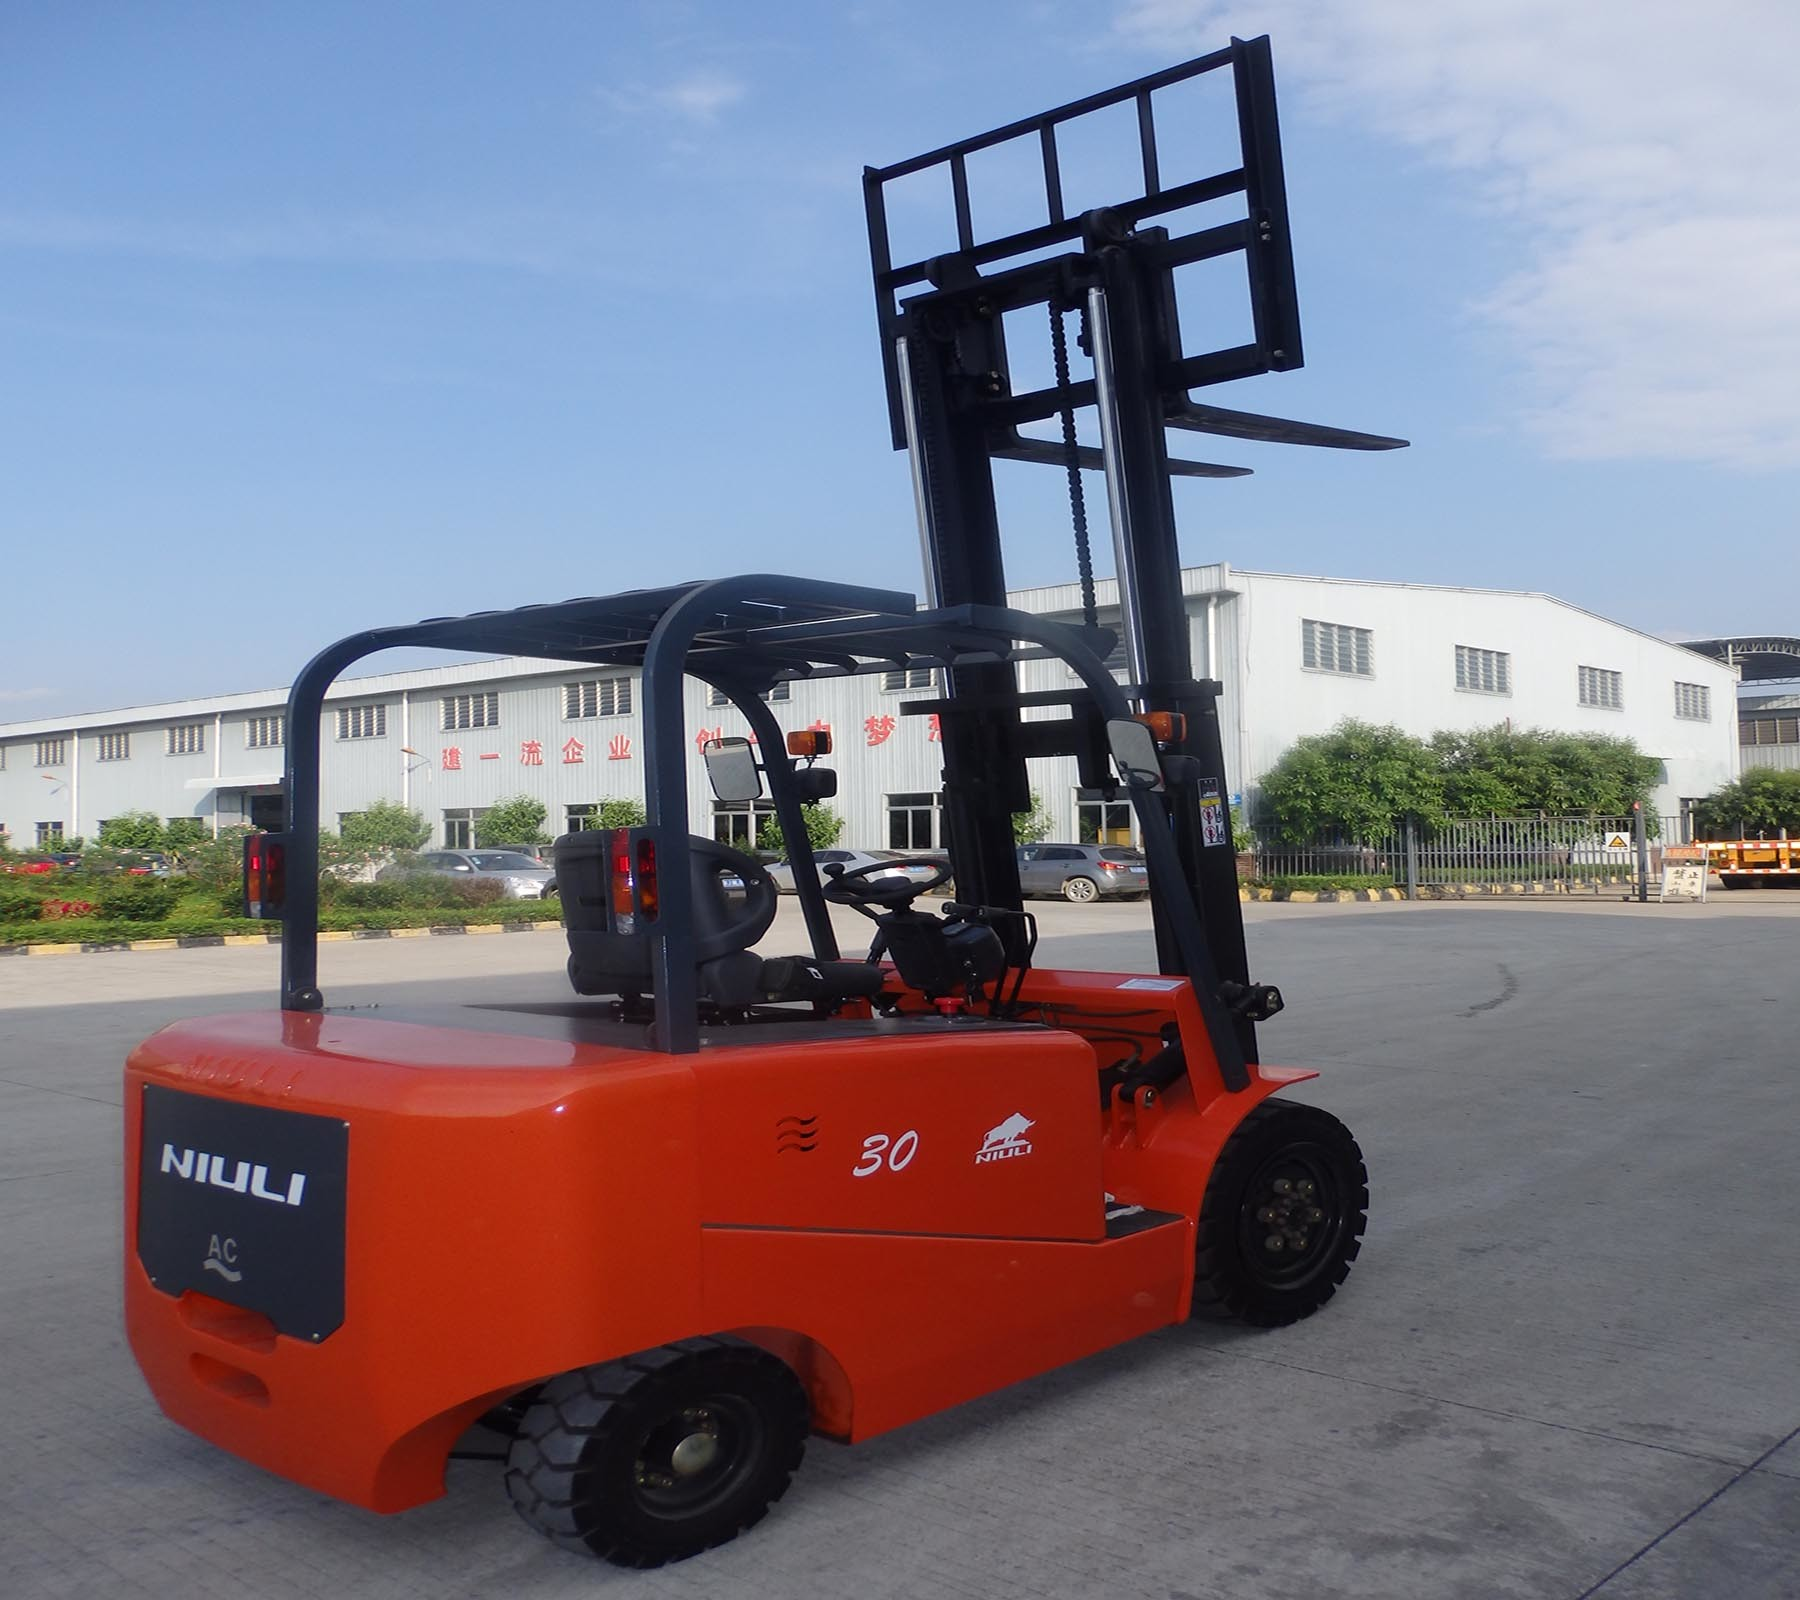 Niuli Eletric Forklift Truck Popular All Over The World